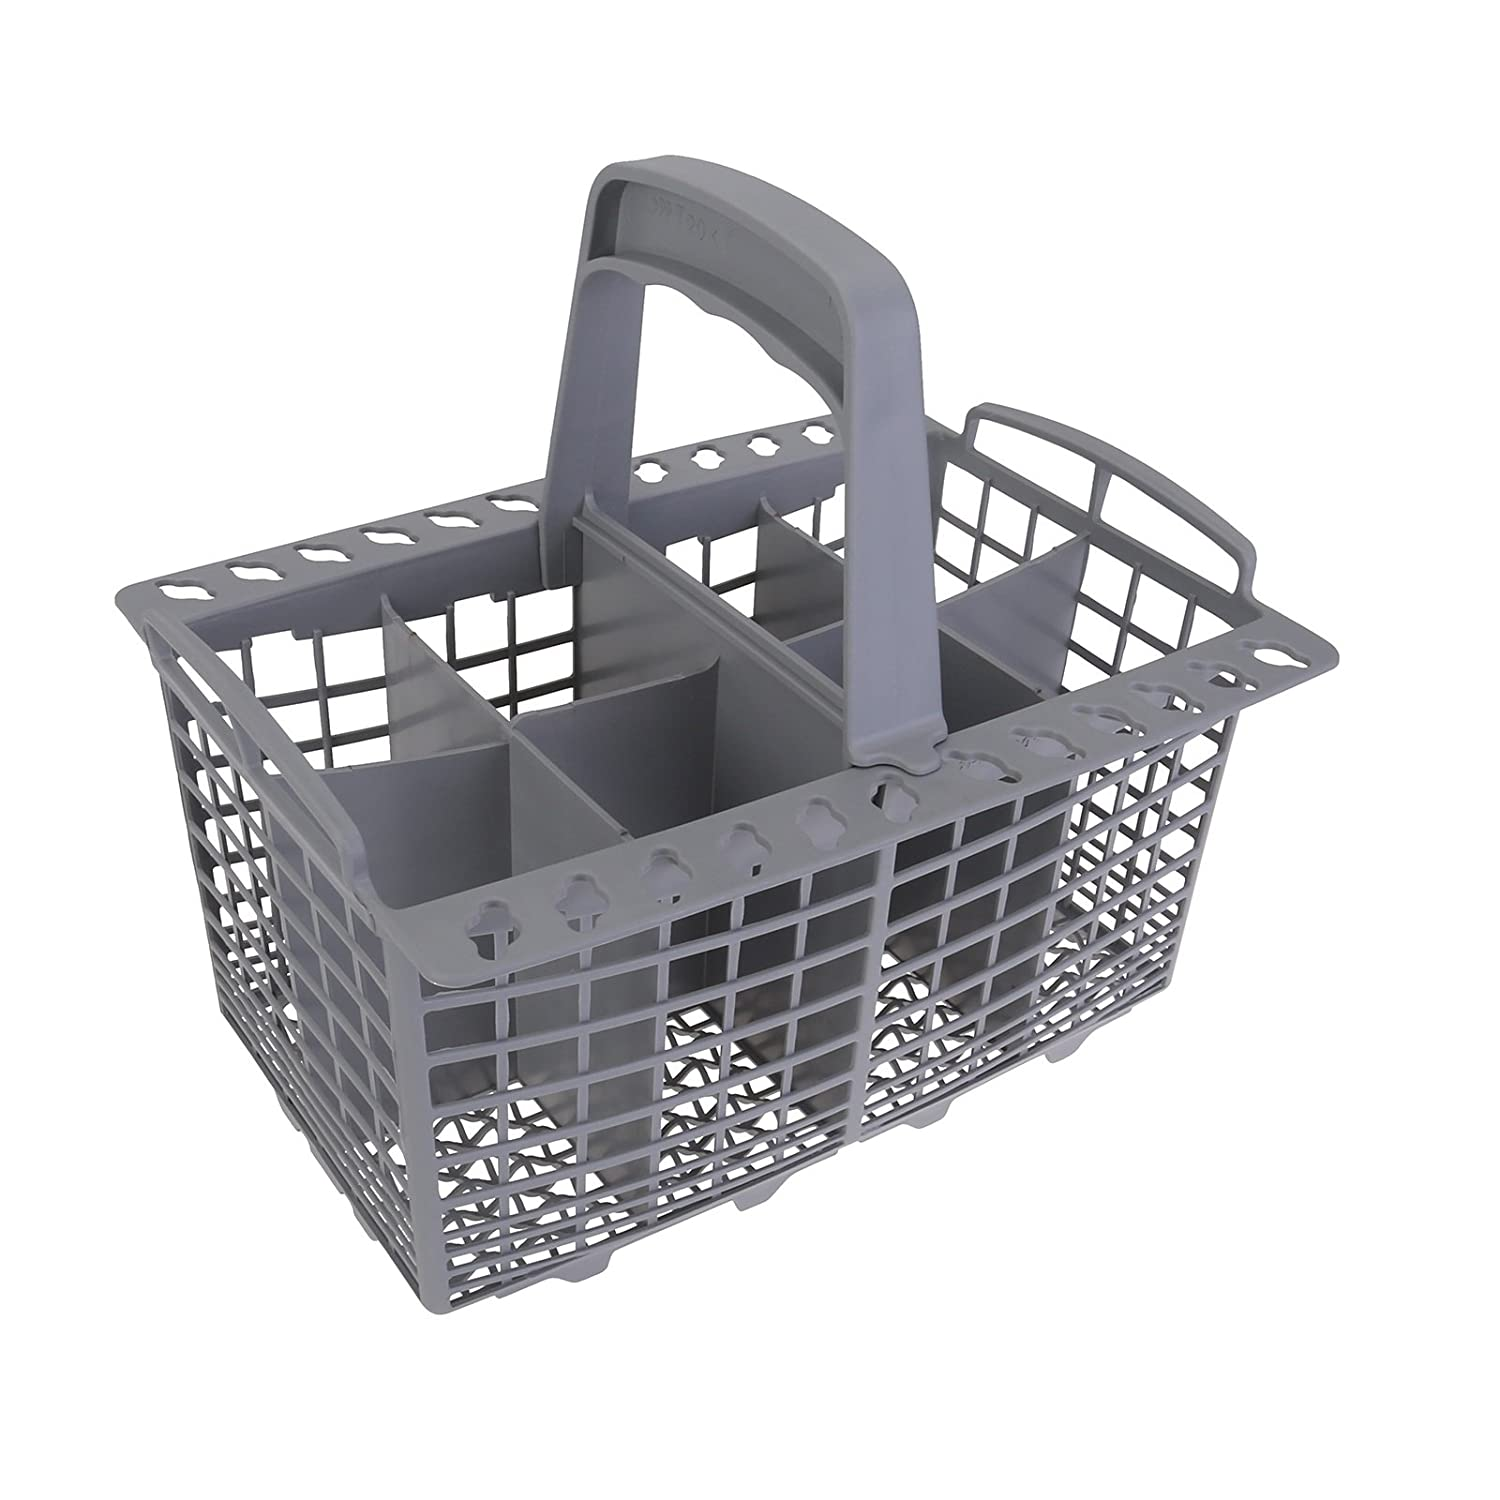 "Qualtex Grey Dishwasher Cutlery Silverware Basket For Kenmore Whirpool Bosch Maytag KitchenAid Maytag Samsung AMANS GE 9"" Long x 5"" Wide With Spoon Holder"